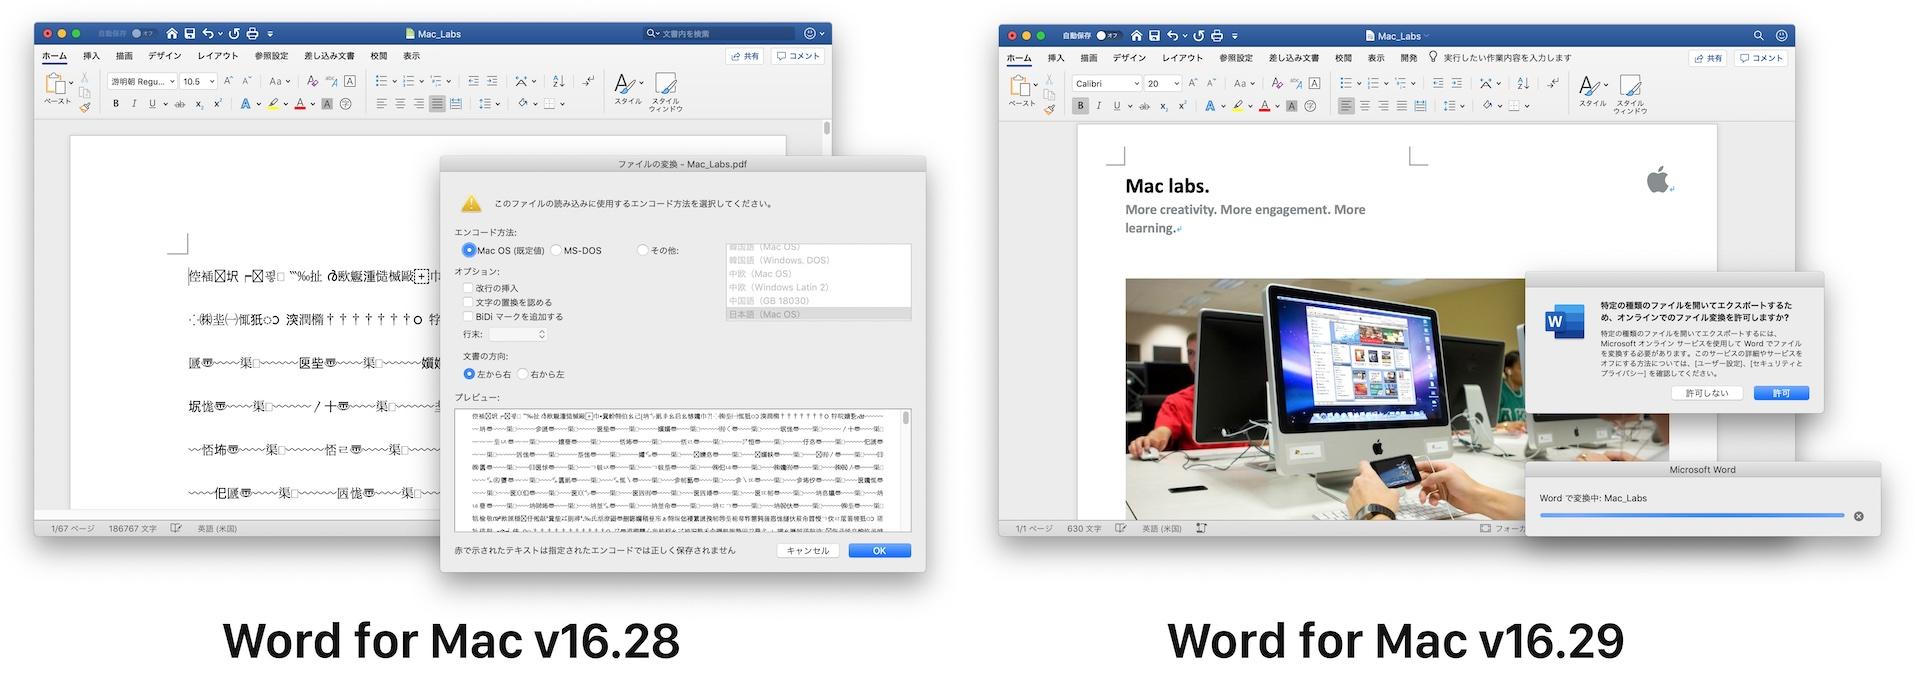 Word for Mac v16.29 support pdf convert to docx